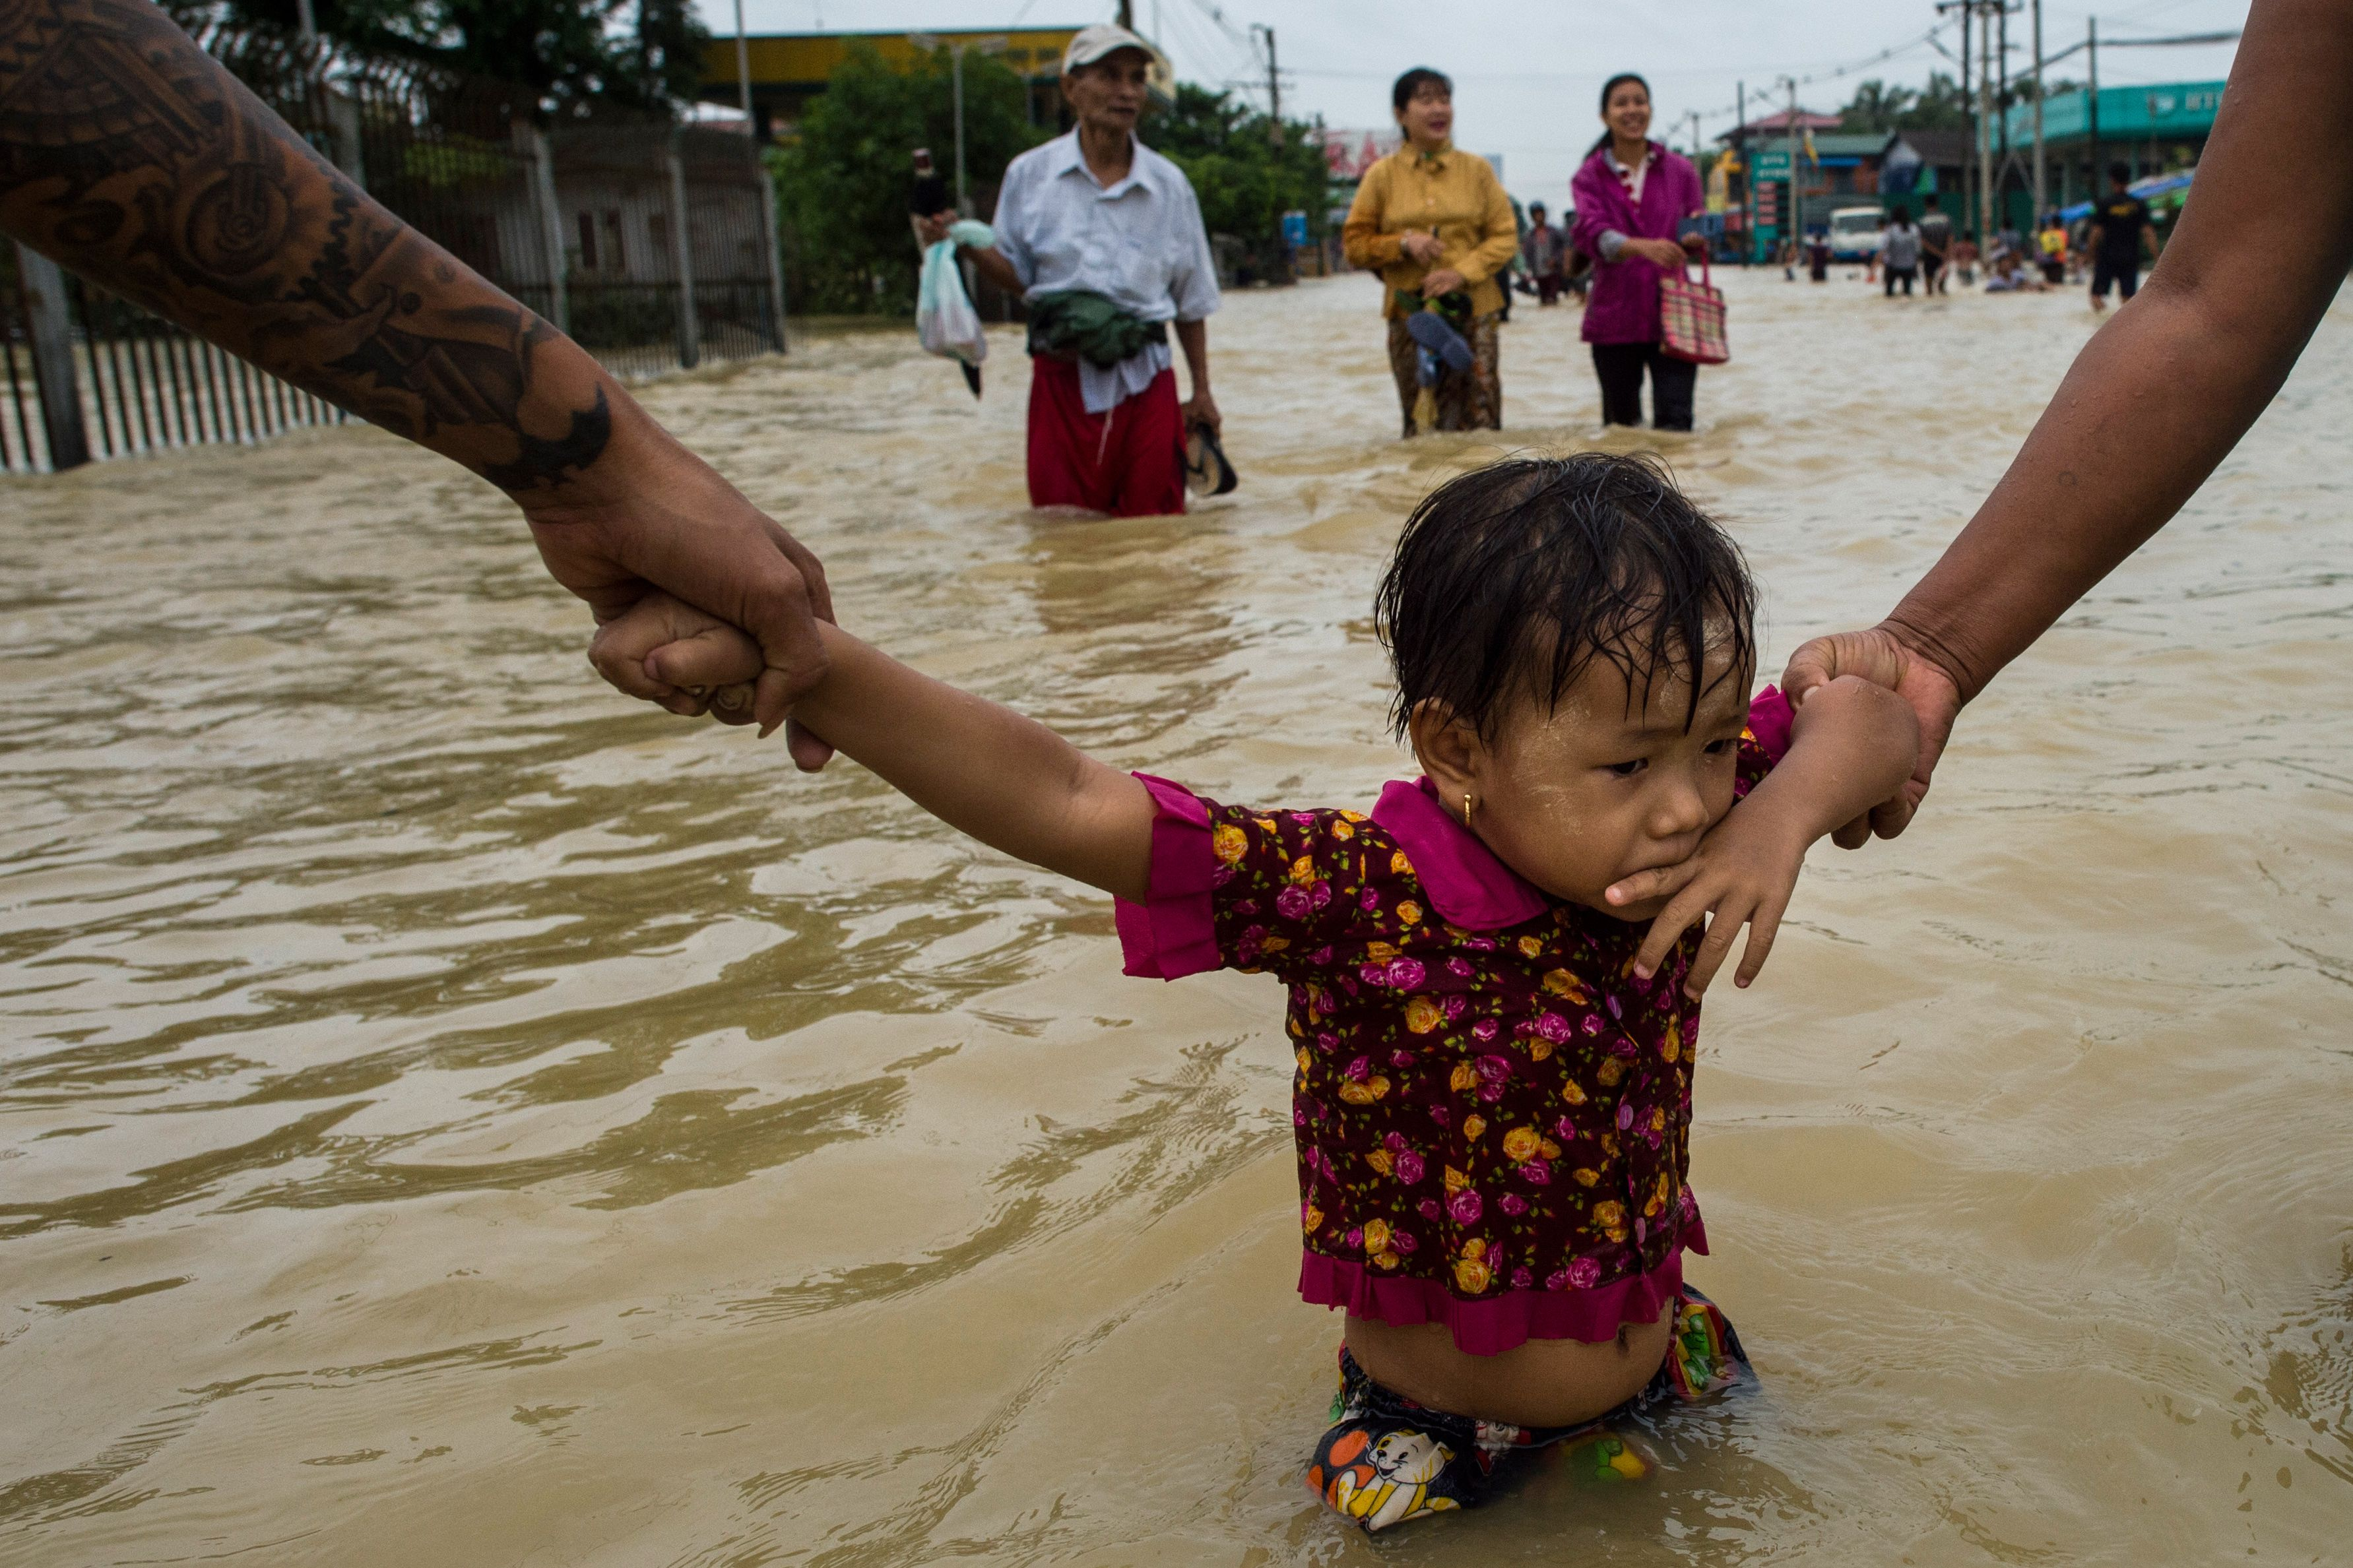 Residents hold onto a child as they walk through floodwaters in the Bago region, some 68 km away from Yangon, on July 29, 2018.